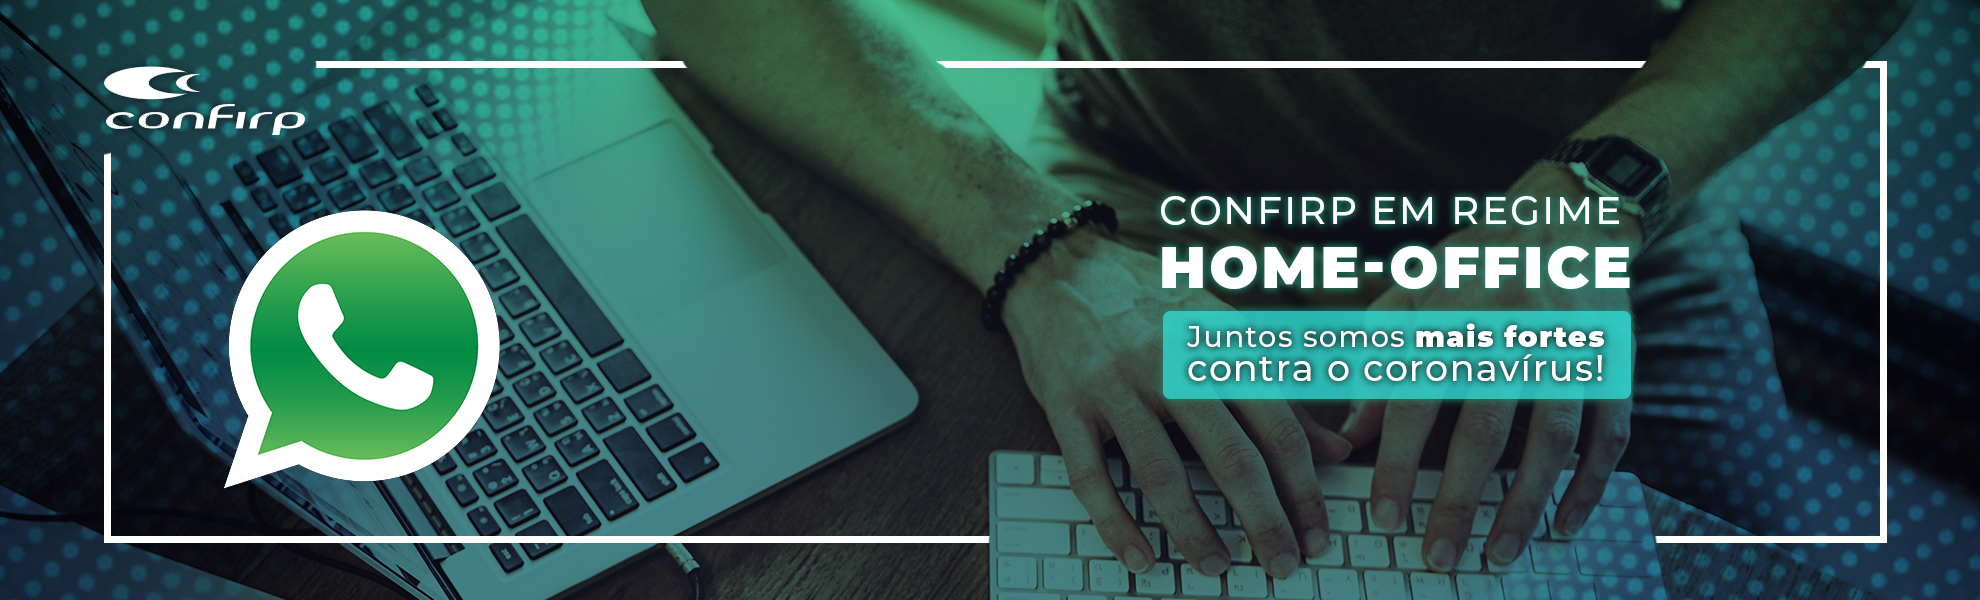 confirp home office site